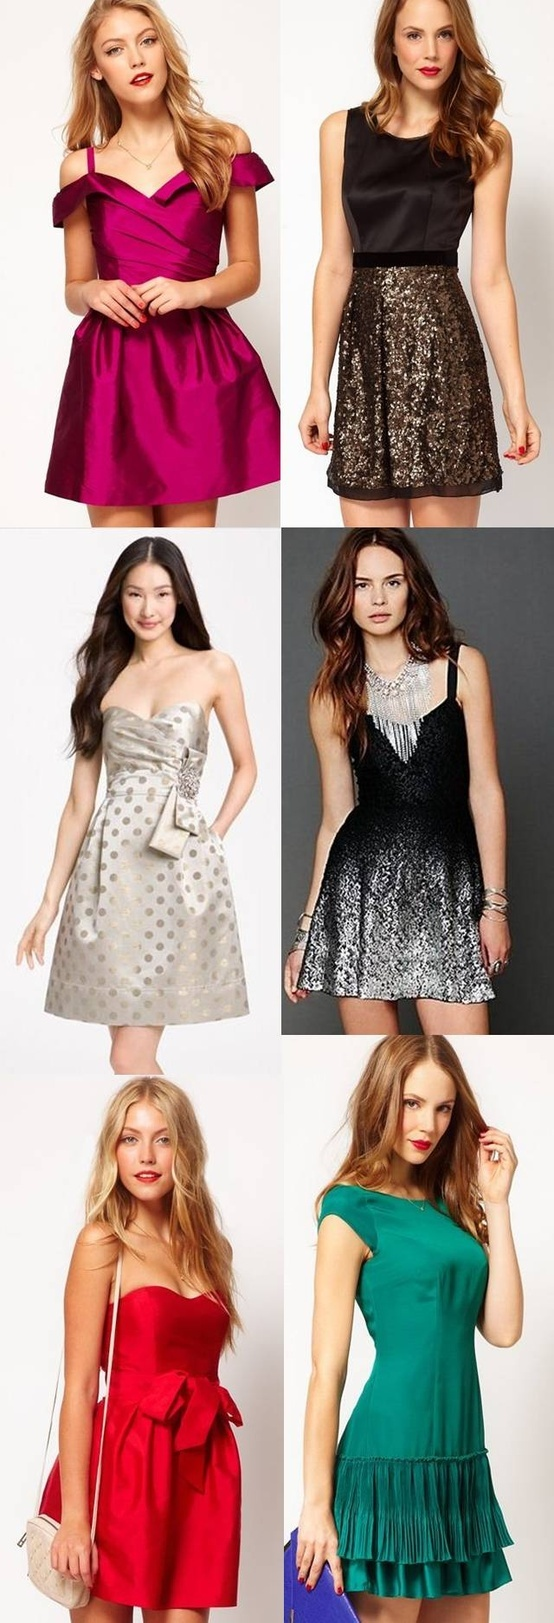 Looking For The Perfect Dress To Wear That Ultra Sy New Year S Eve Party You